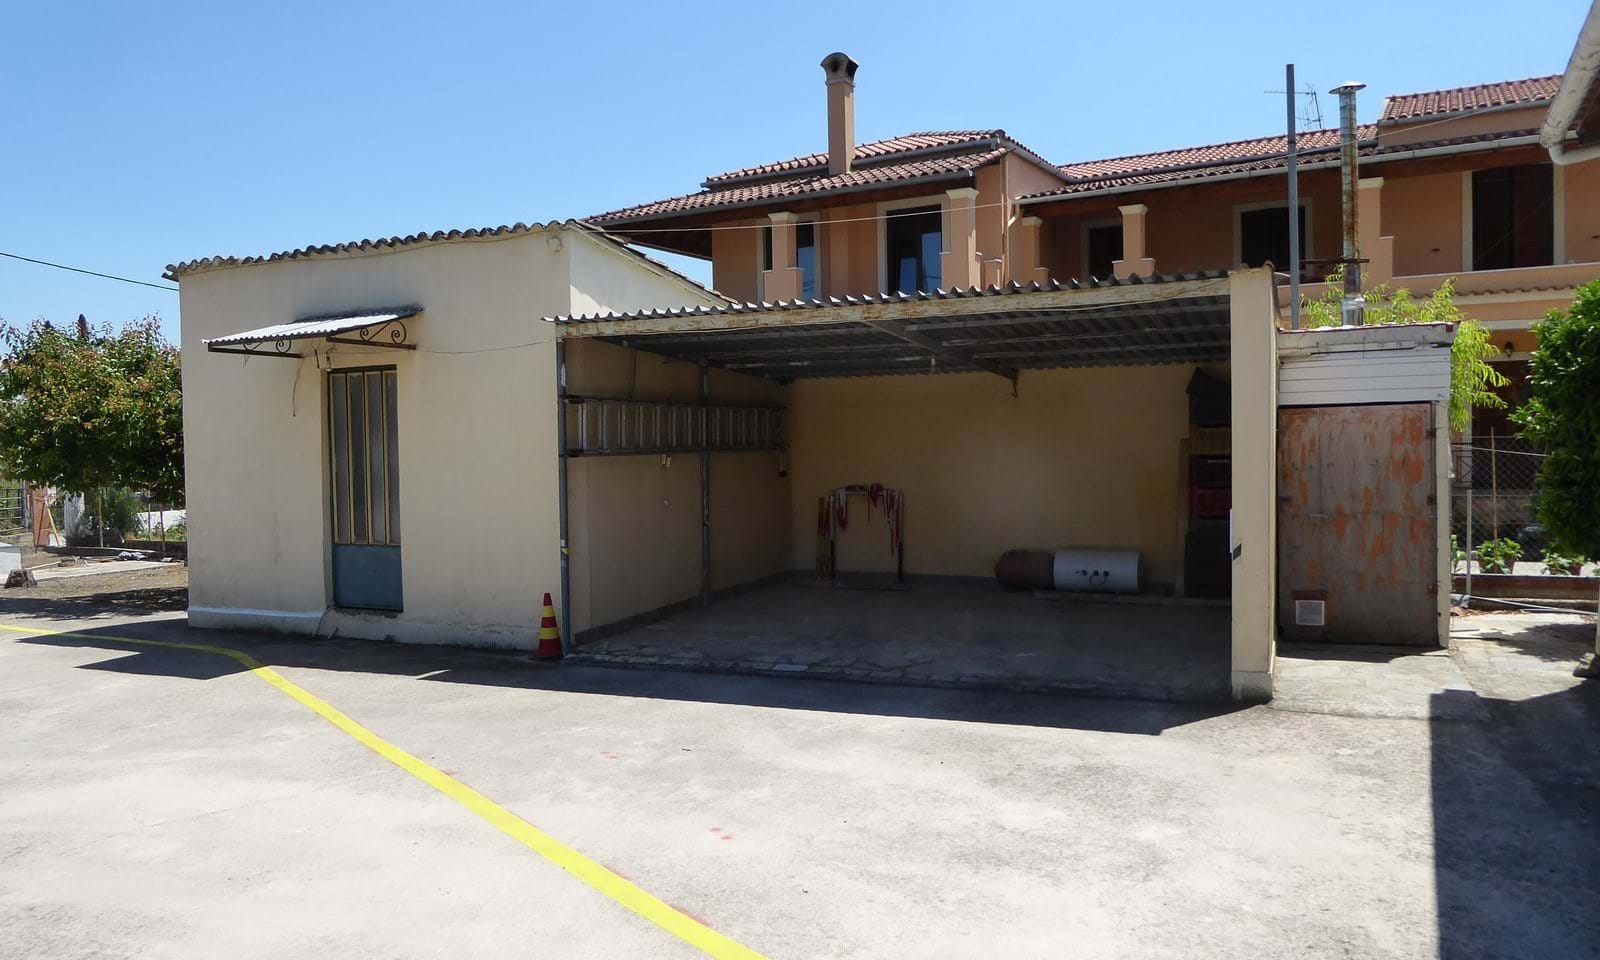 Property for sale close to Corfu town